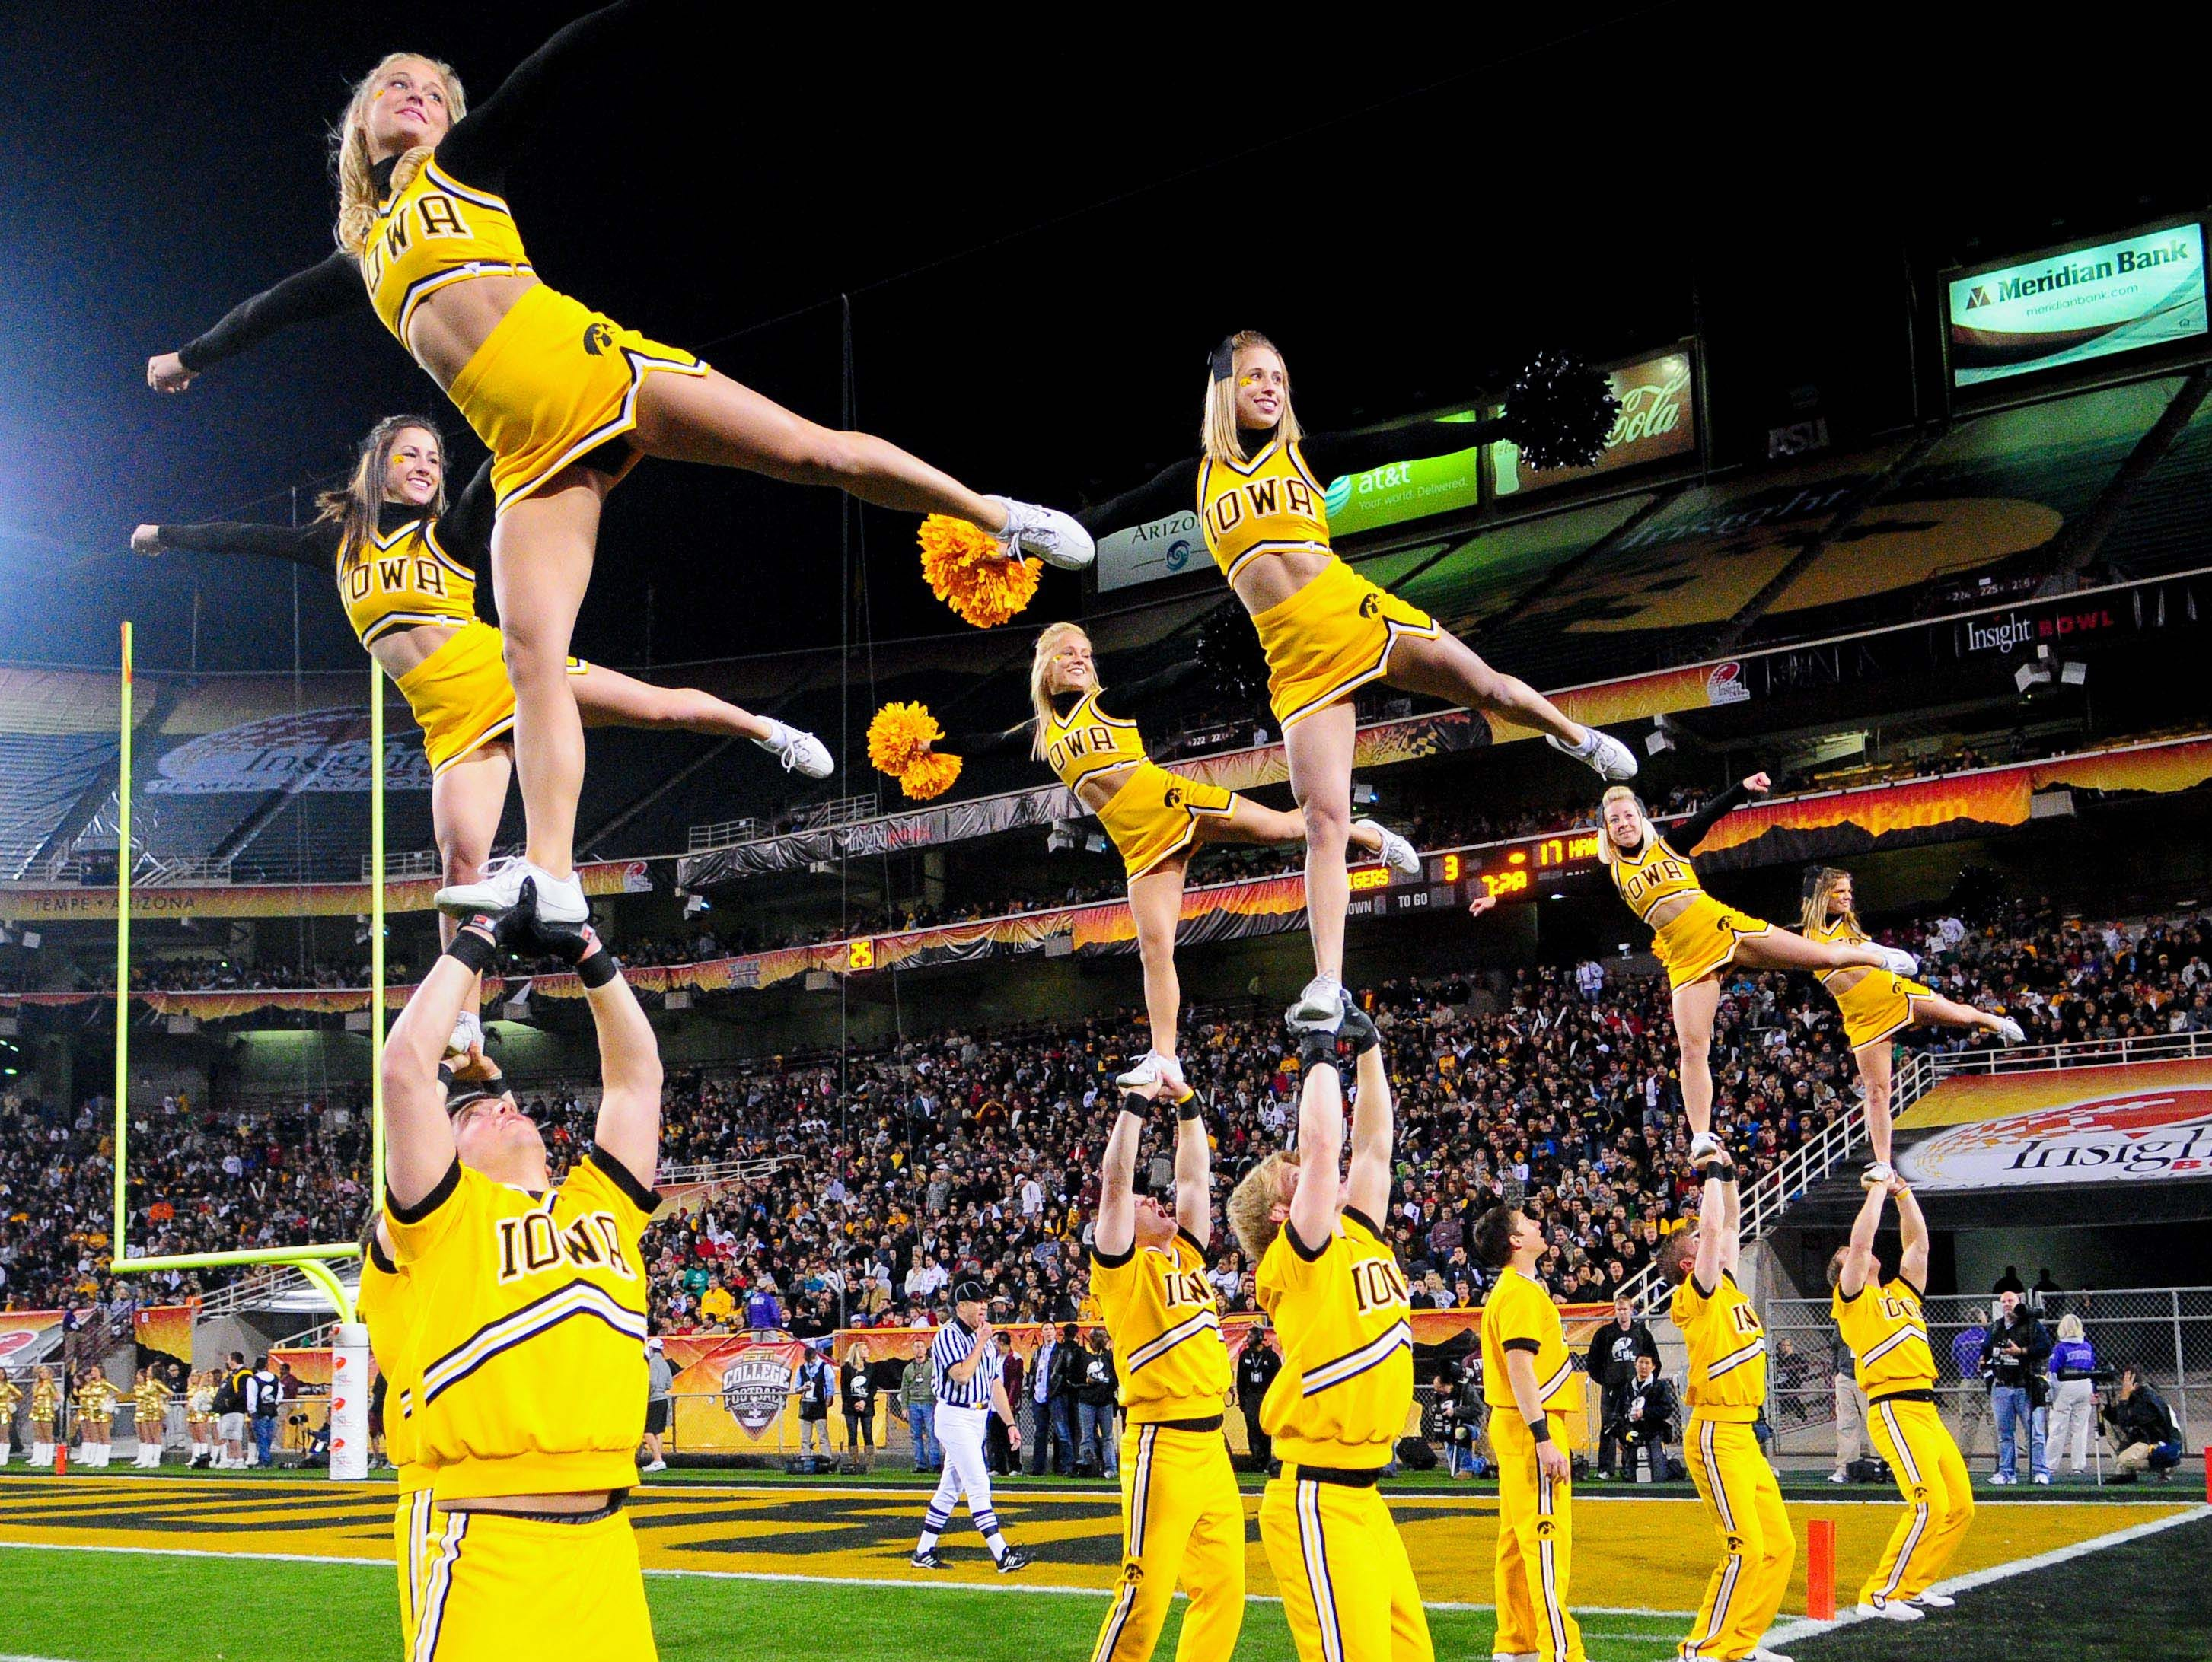 Dec. 28, 2010; Tempe, AZ, USA; Iowa Hawkeyes cheerleaders perform during the first half against the Missouri Tigers during the 2010 Insight Bowl at Sun Devil Stadium. The Hawkeyes beat the Tigers 27-24.  Mandatory Credit: Matt Kartozian-USA TODAY Sports